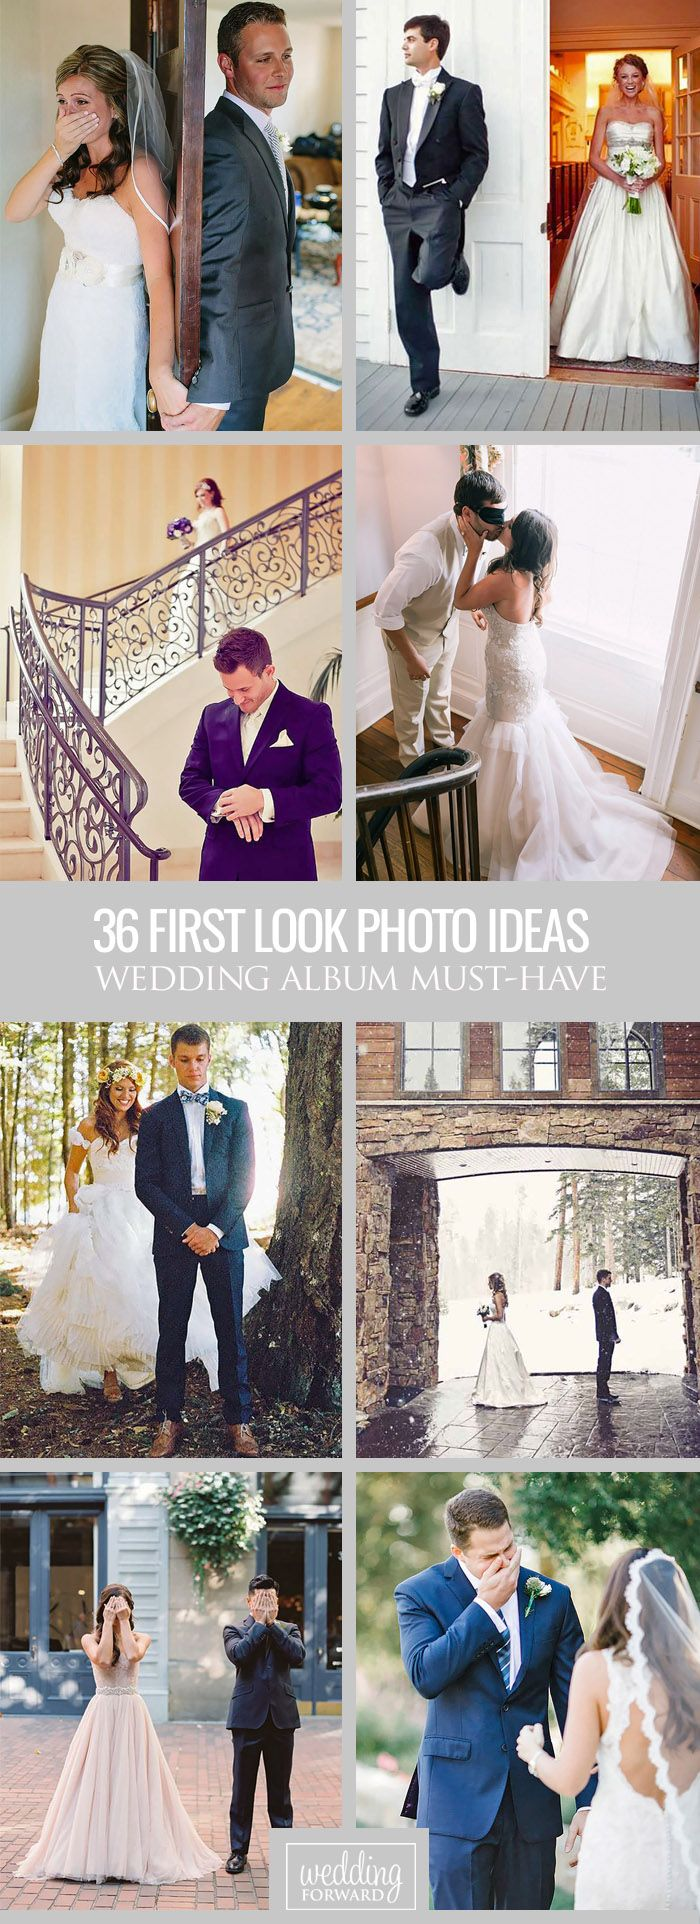 36 Touching First Look Wedding Photos ❤ Many couples chose to break the rule in favour of incredibly romantic first look wedding photos.  See more: http://www.weddingforward.com/first-look-wedding-photos/ #weddings #photo